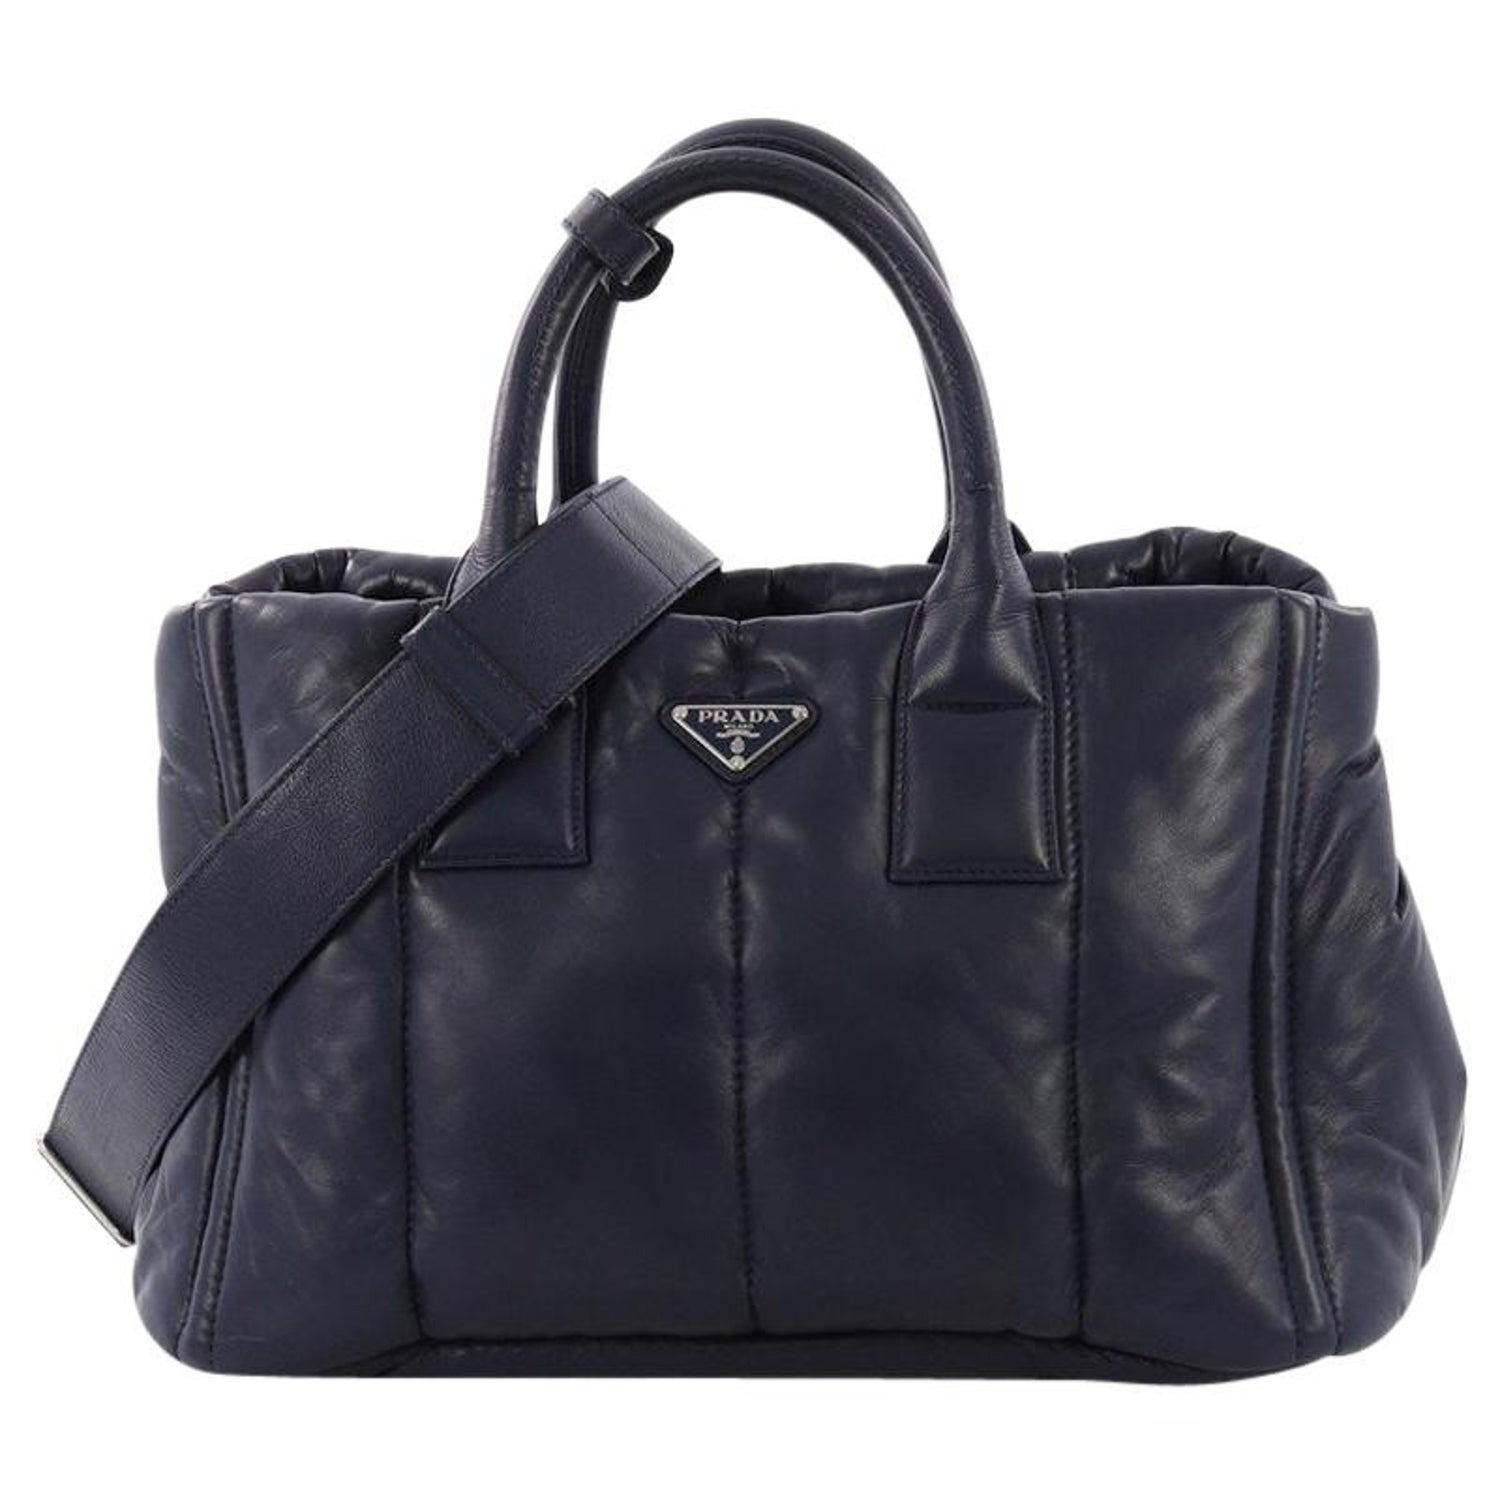 d50cdf0d1c7b Prada Bomber Convertible Tote Nappa Leather Medium For Sale at 1stdibs